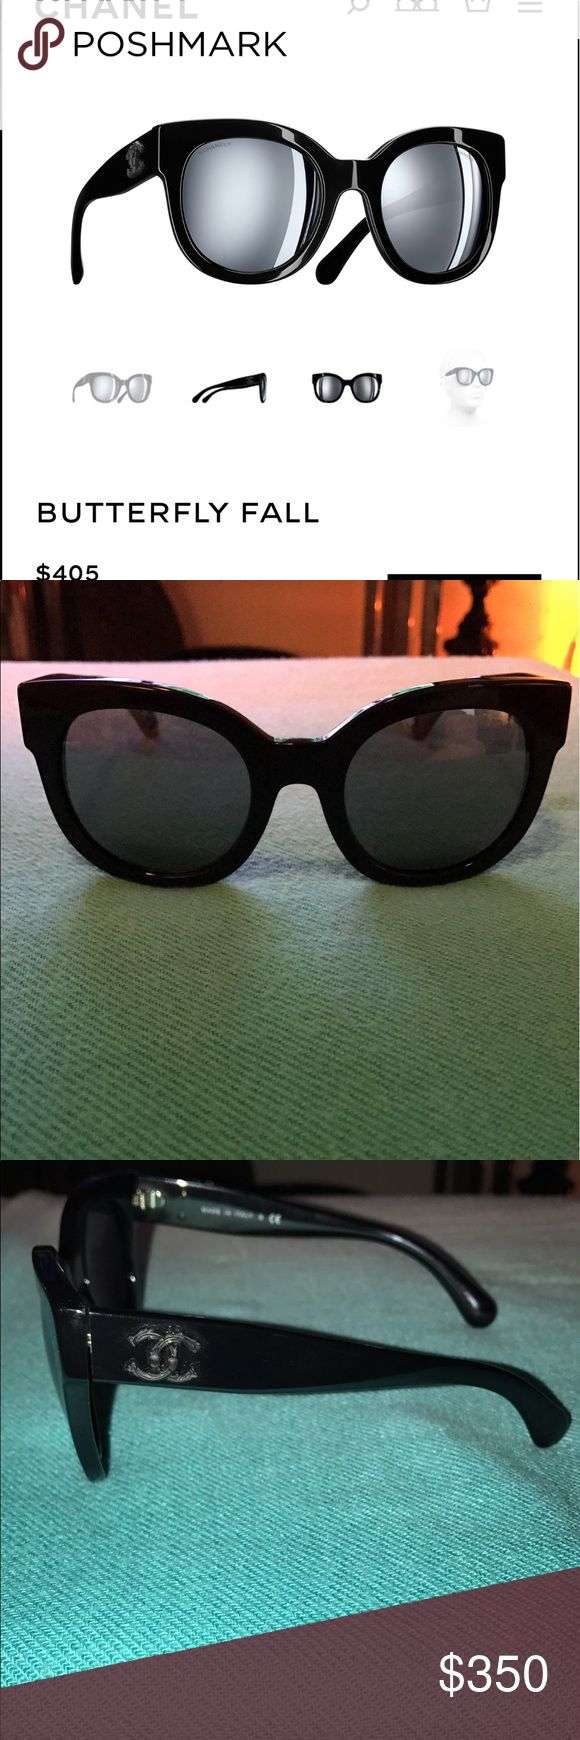 CHANEL oversized cat eye sunglasses Brand new never worn out so no scratches or smudges. Decided to get them since I was in love with the matte black rubber Chanel logo on the sides but decided after I bought them that I like more round glasses on my face shape and it ended up getting too late to return. If you want to look classy but cool at the same time these are the glasses to get lol CHANEL Accessories Sunglasses